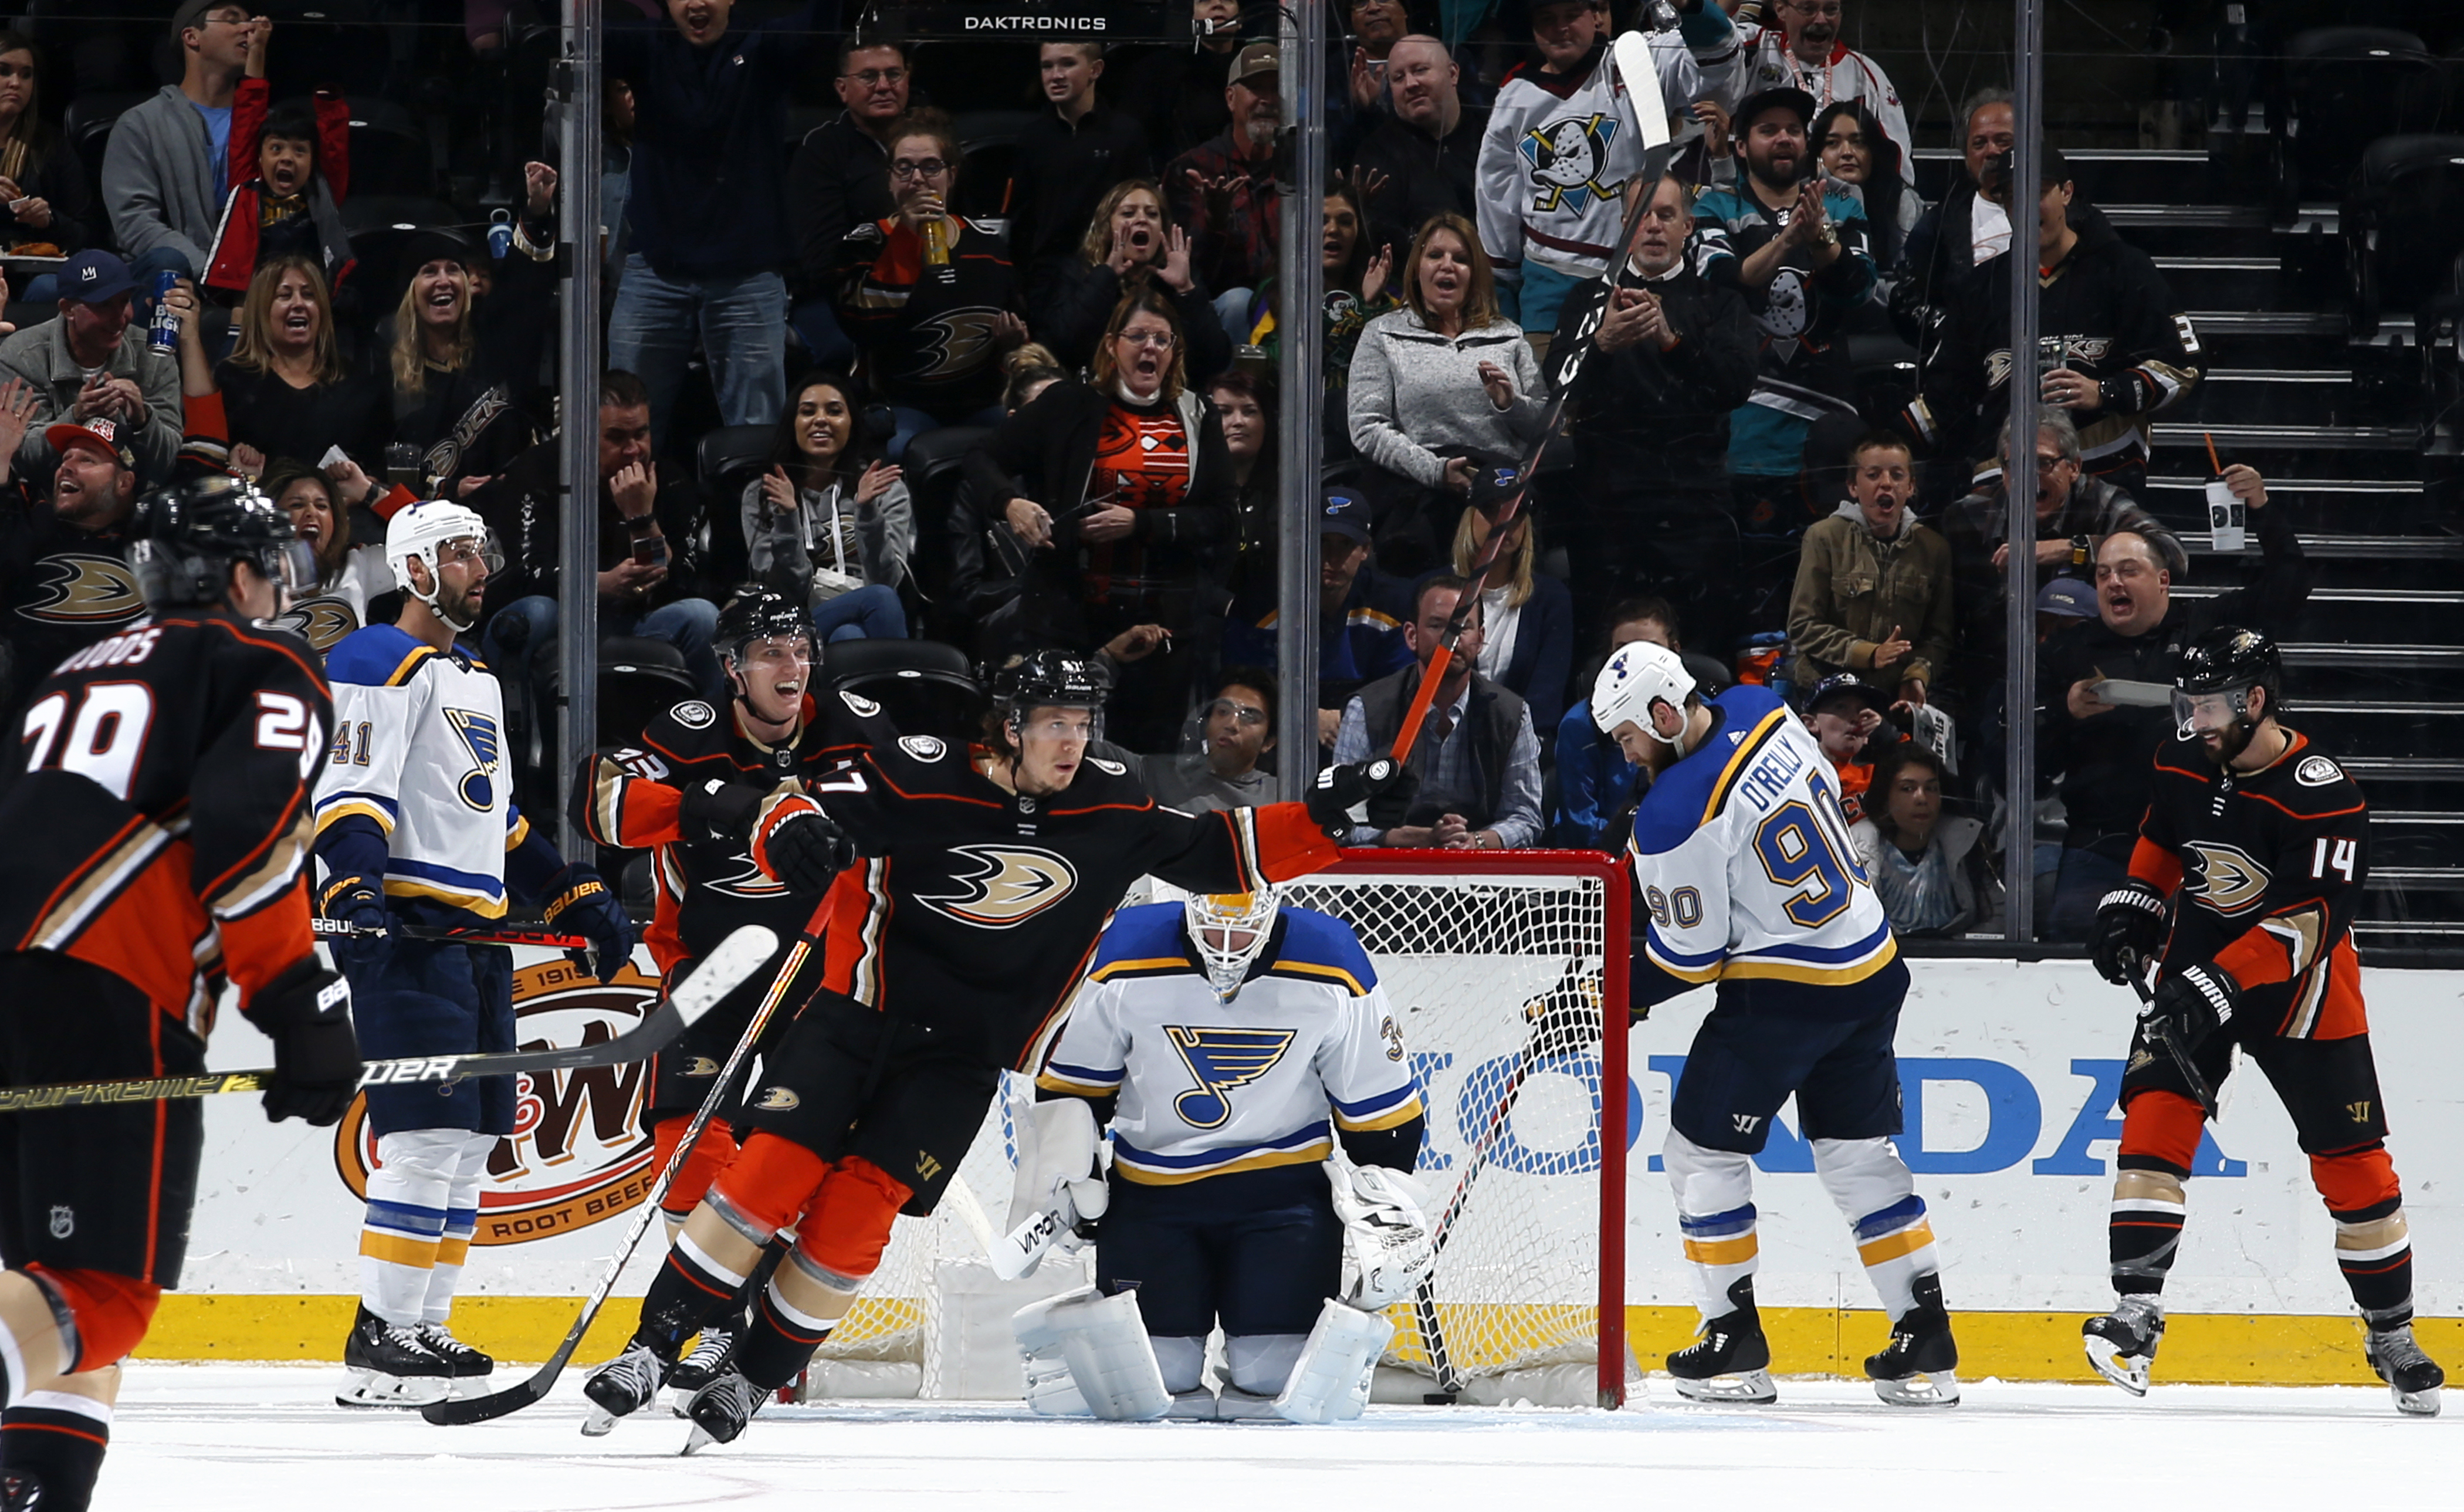 Rickard Rakell #67, Jakob Silfverberg #33, Christian Djoos #29, and Adam Henrique #14 of the Anaheim Ducks celebrate a second period goal against Jake Allen #34, Robert Bortuzzo #41, and Ryan O'Reilly #90 of the St. Louis Blues during the game at Honda Center on March 11, 2020 in Anaheim, California.